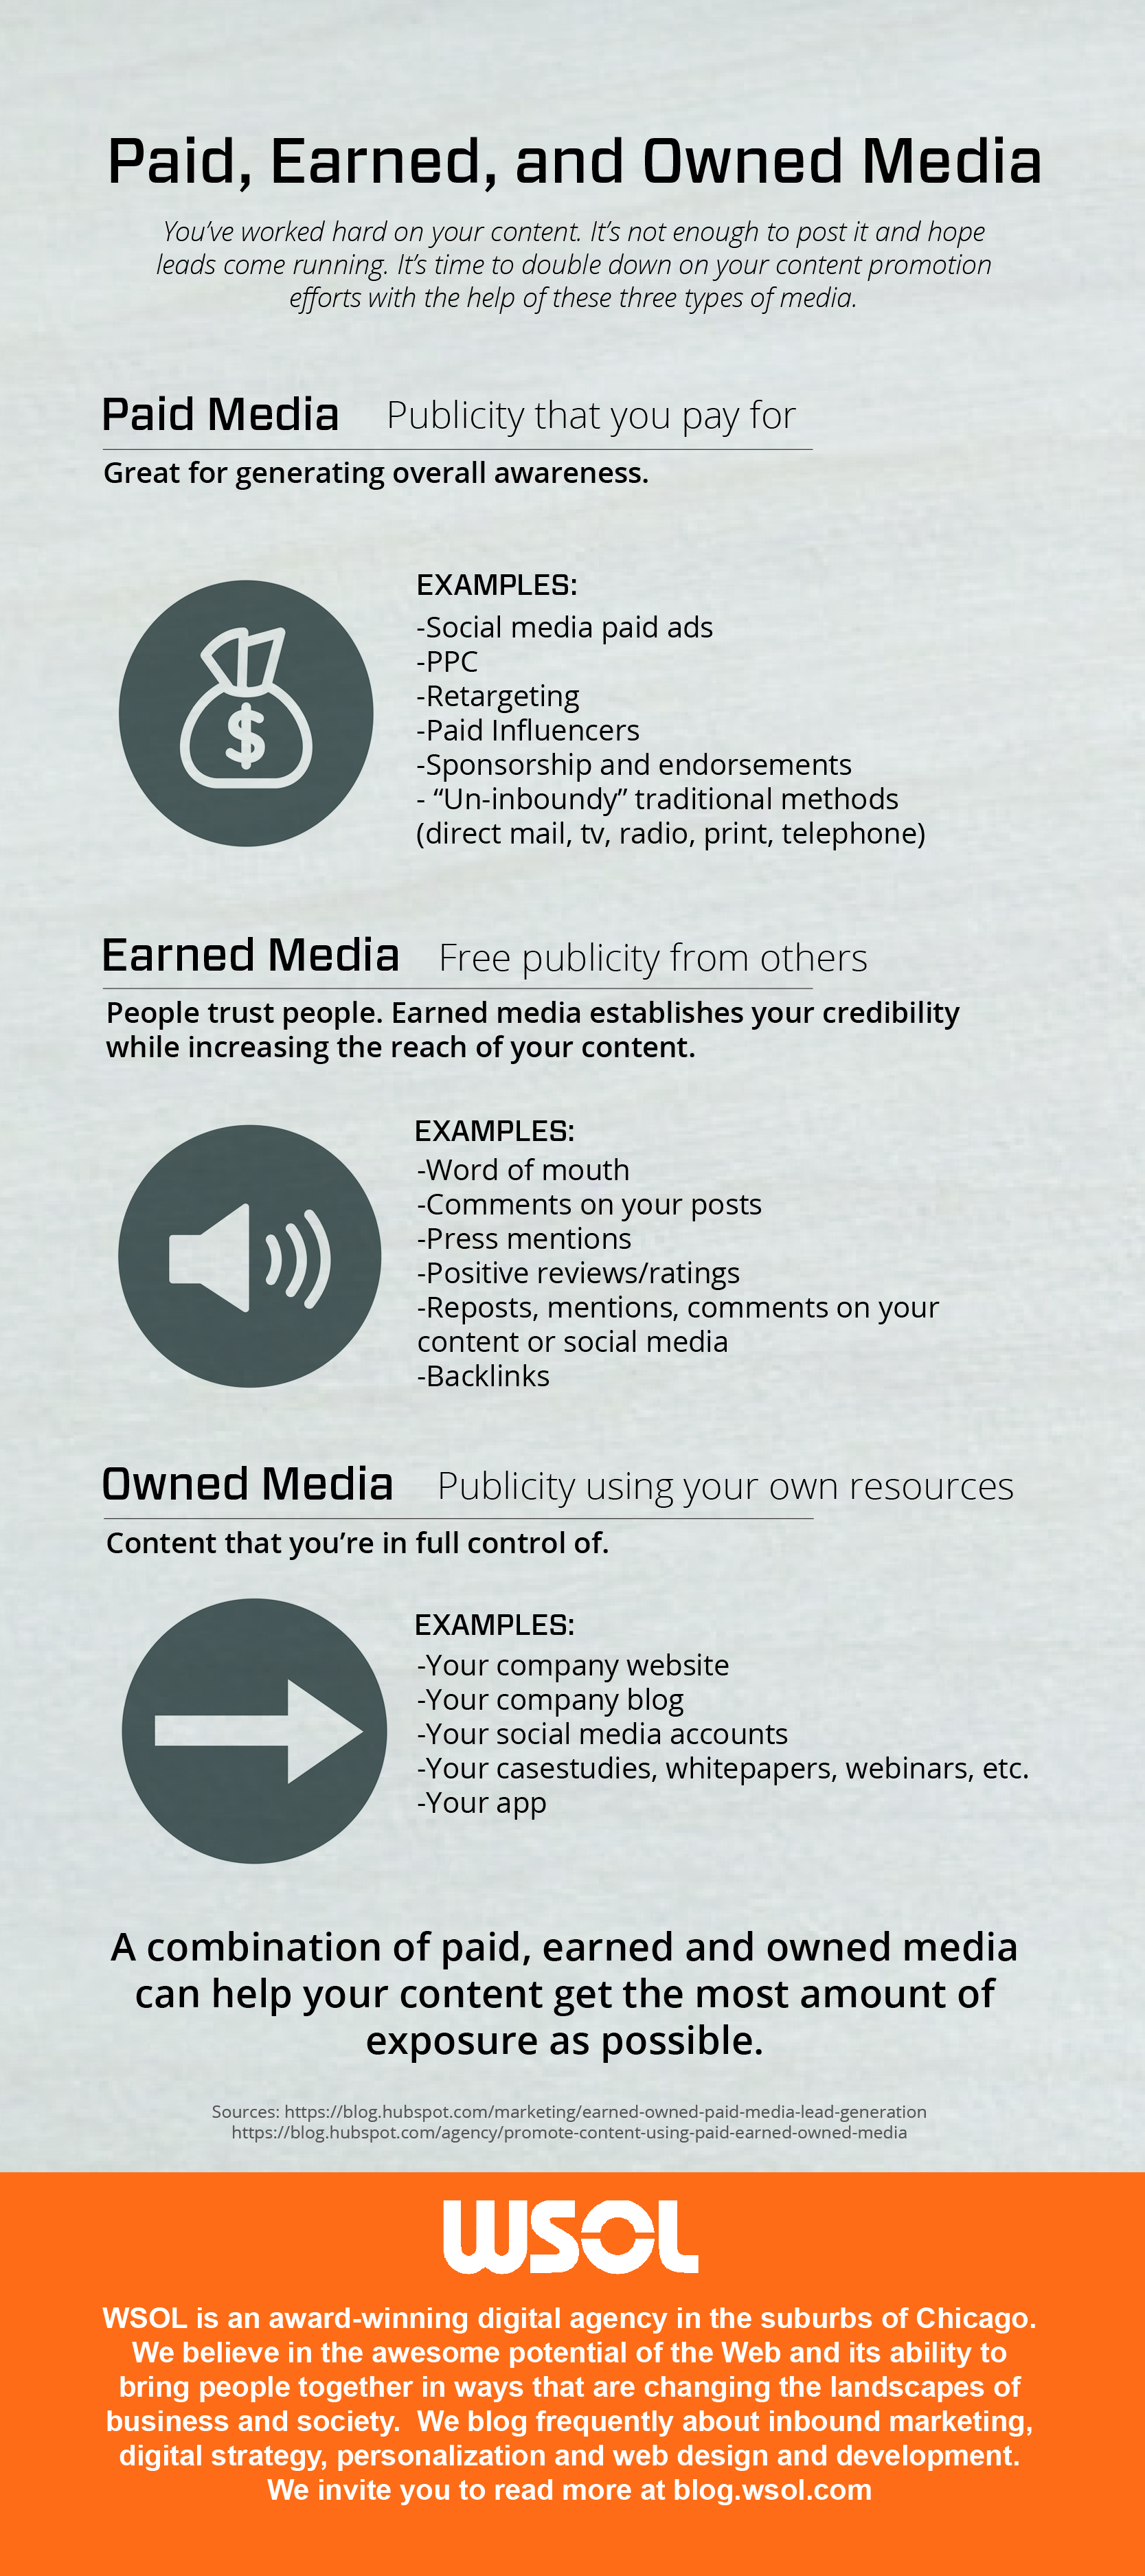 Paid, Earned, and Owned Media